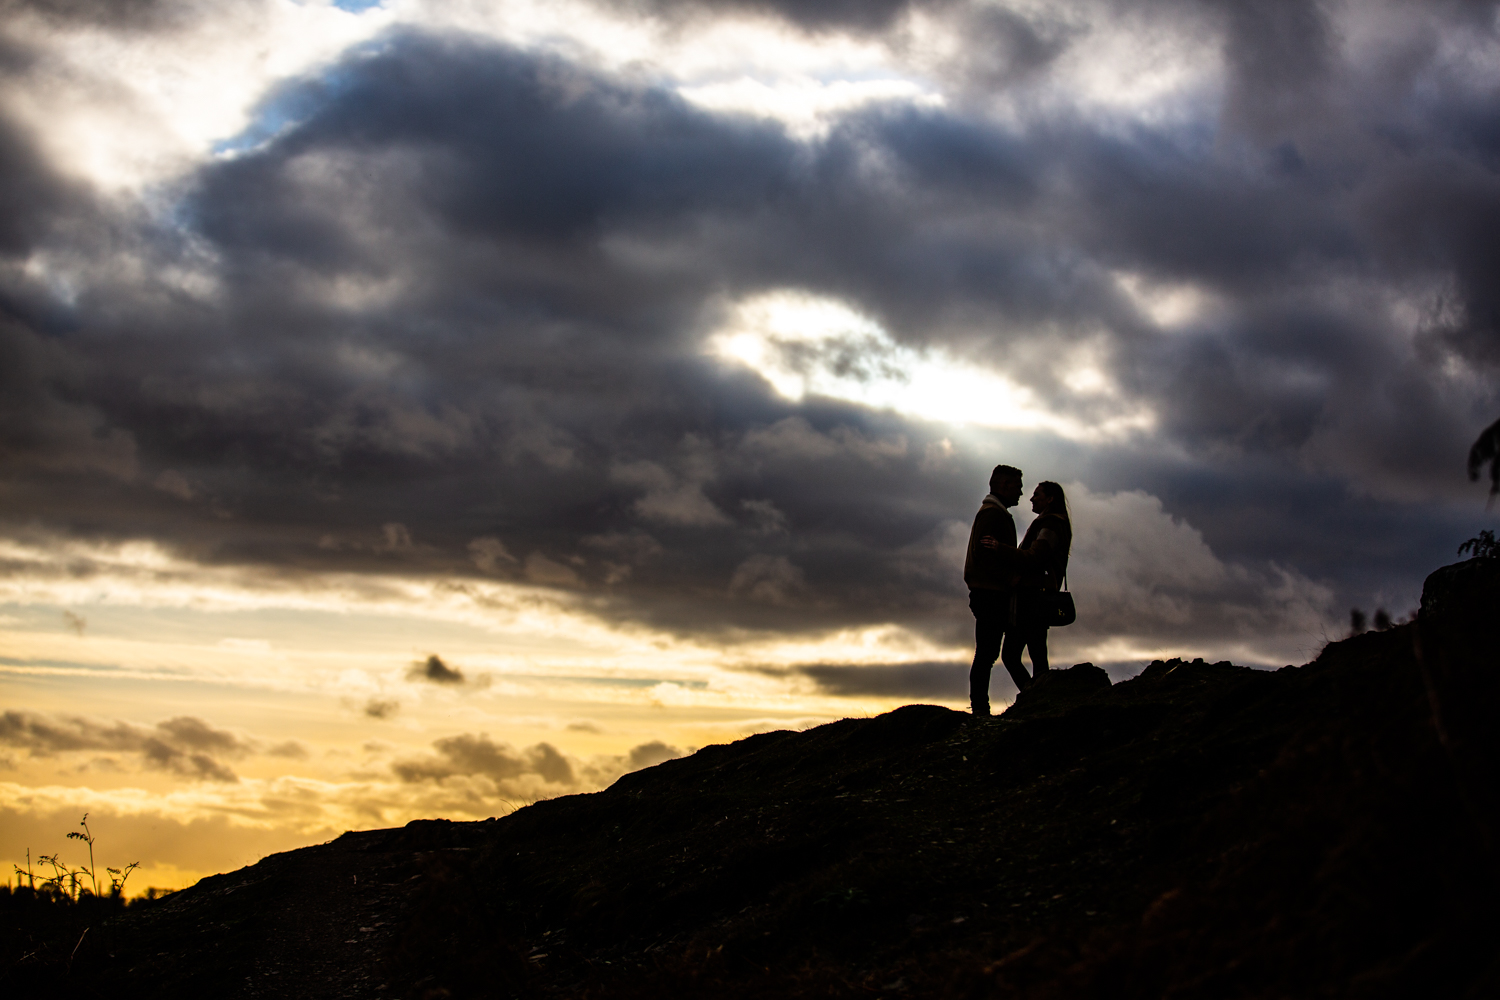 I love a silhouette image - look at that sky!